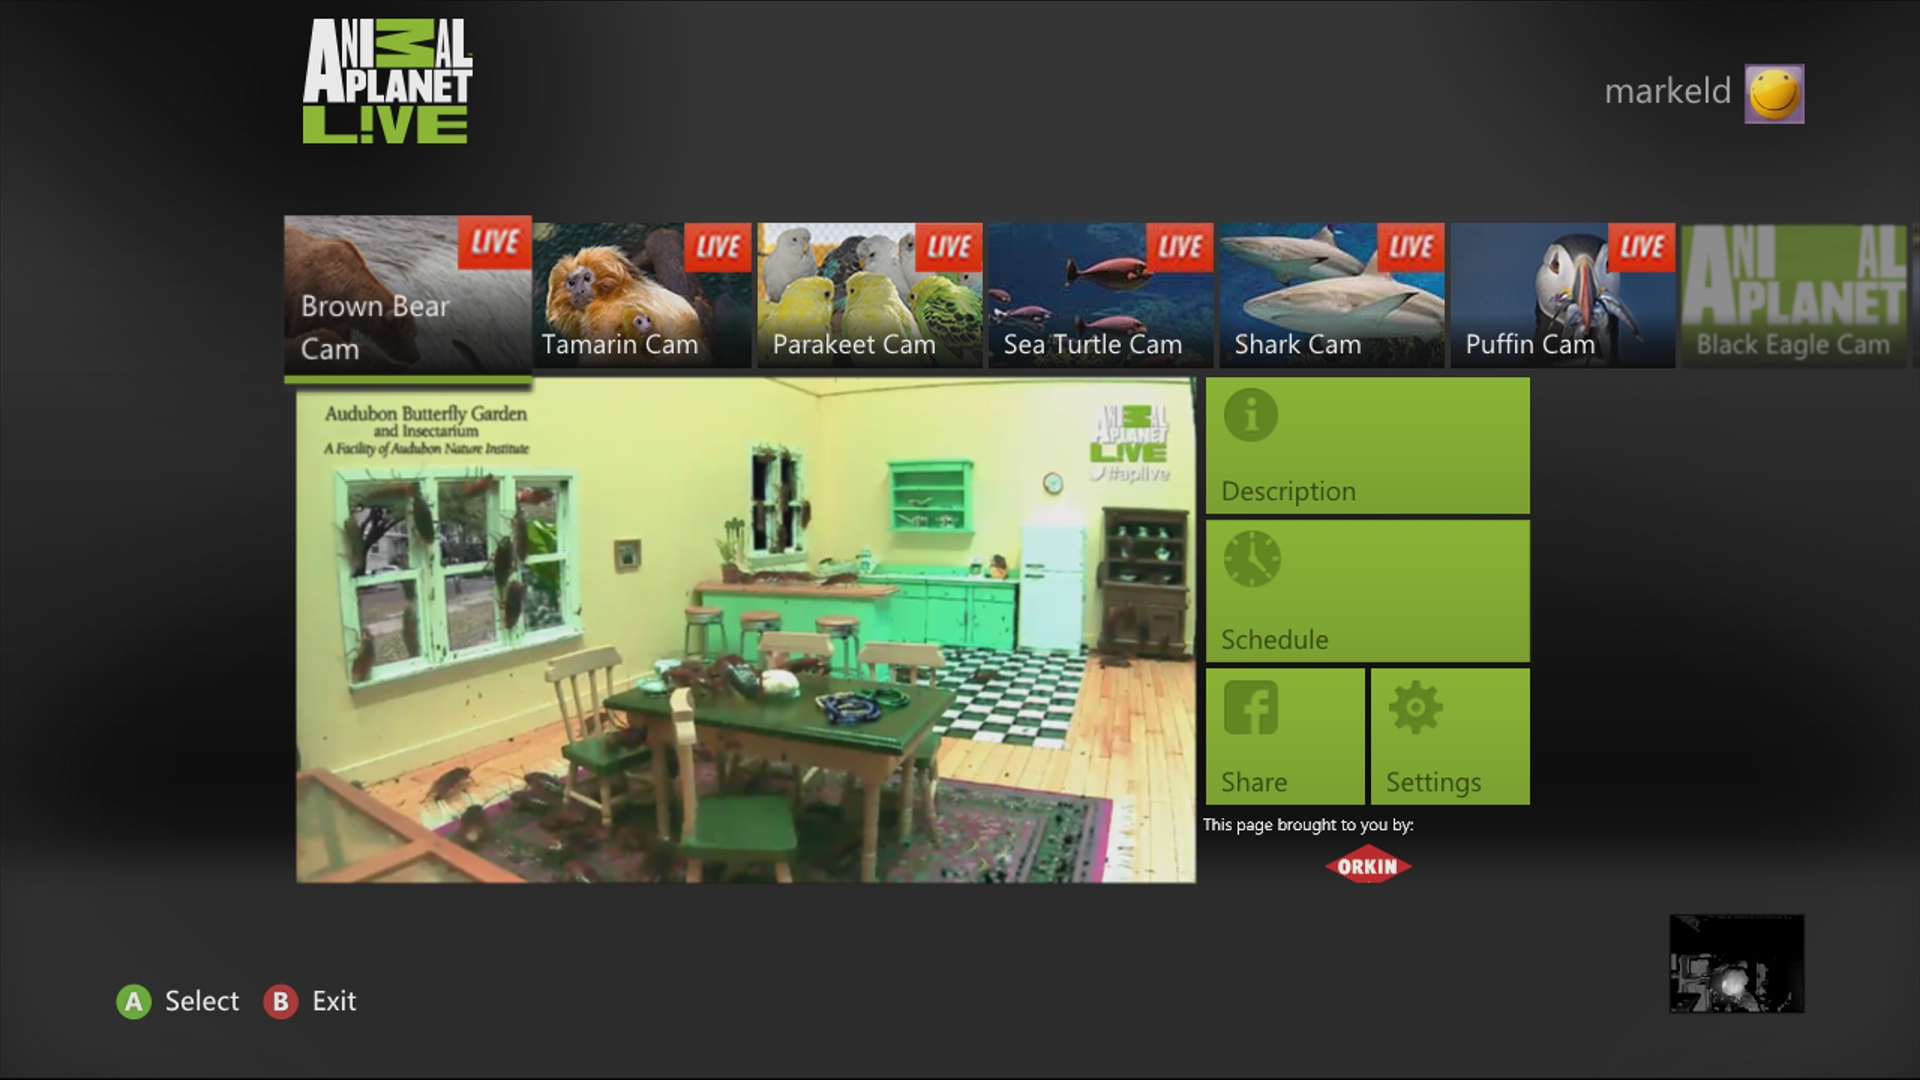 Animal Planet LIVE Xbox 360 Home screen